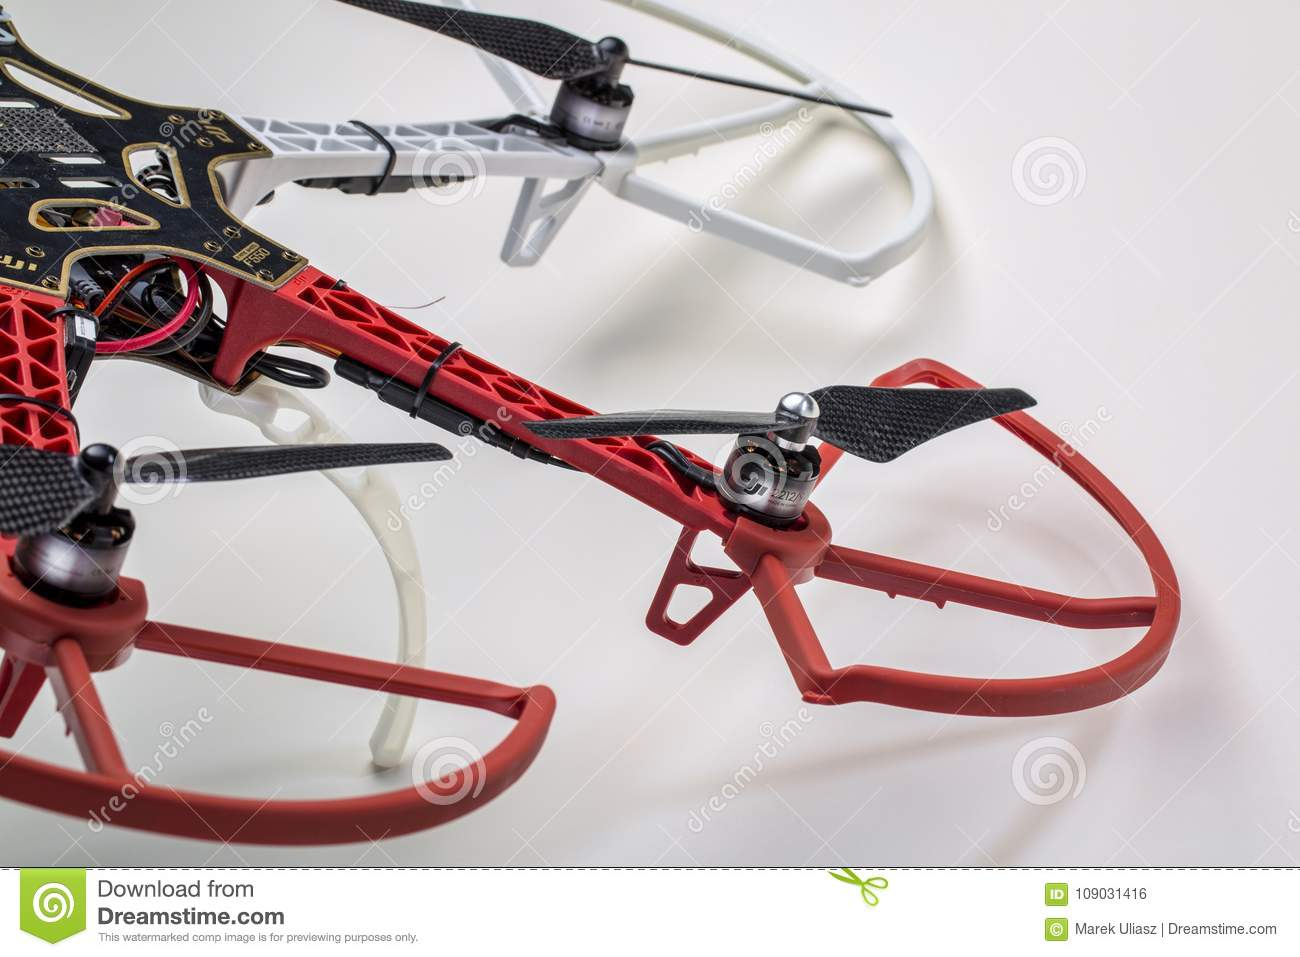 Hexacopter drone abstract editorial photo  Image of technology